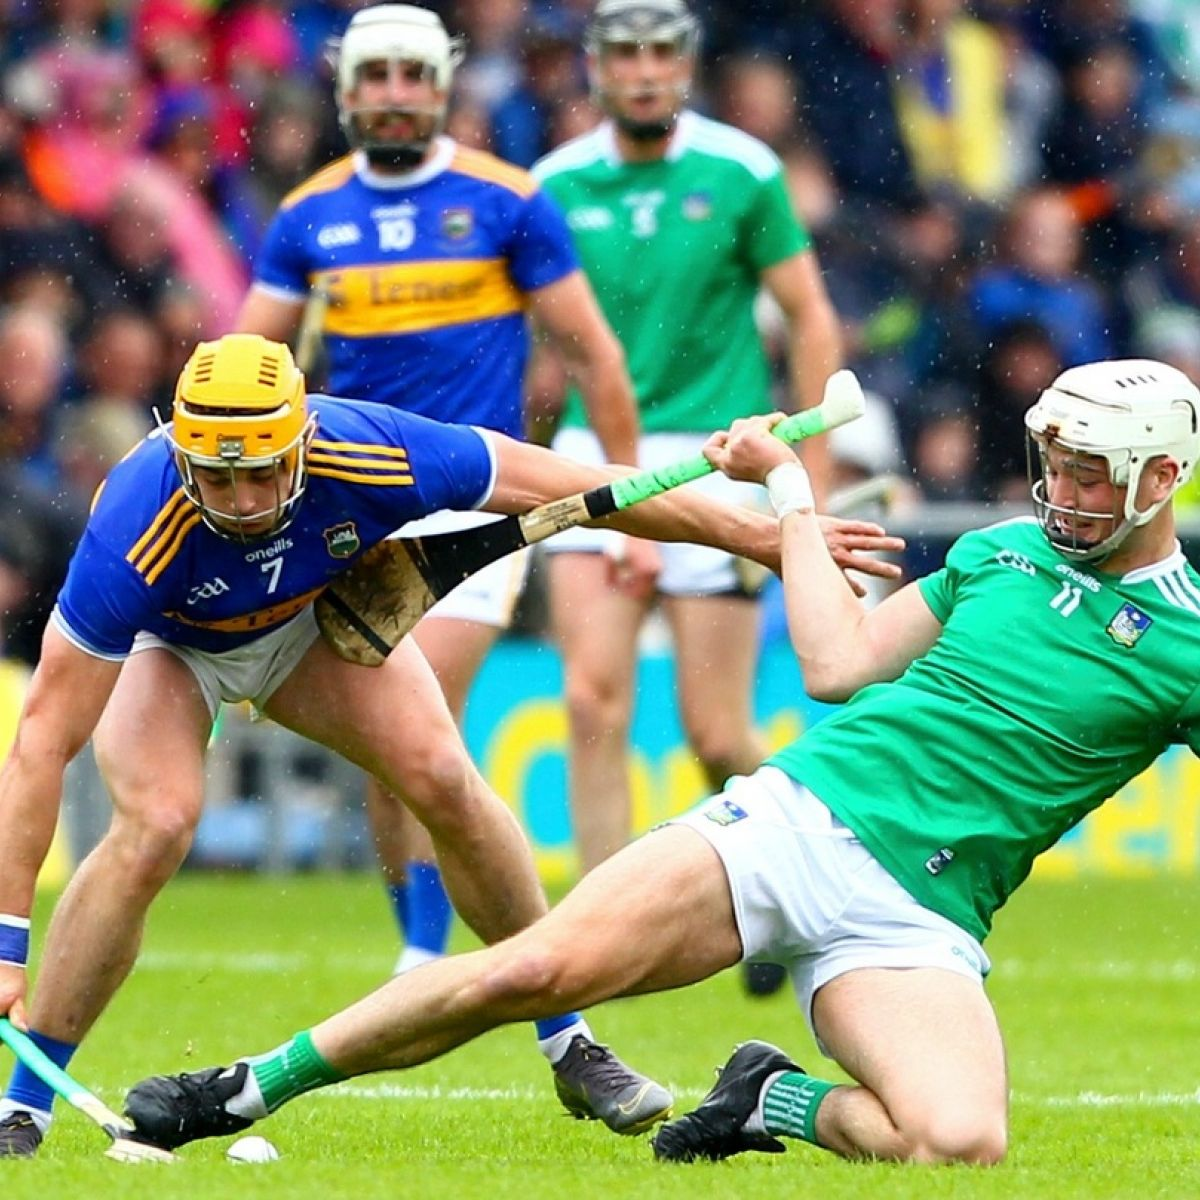 Heartbreak for Wexford as Tipperary edge thriller to set up